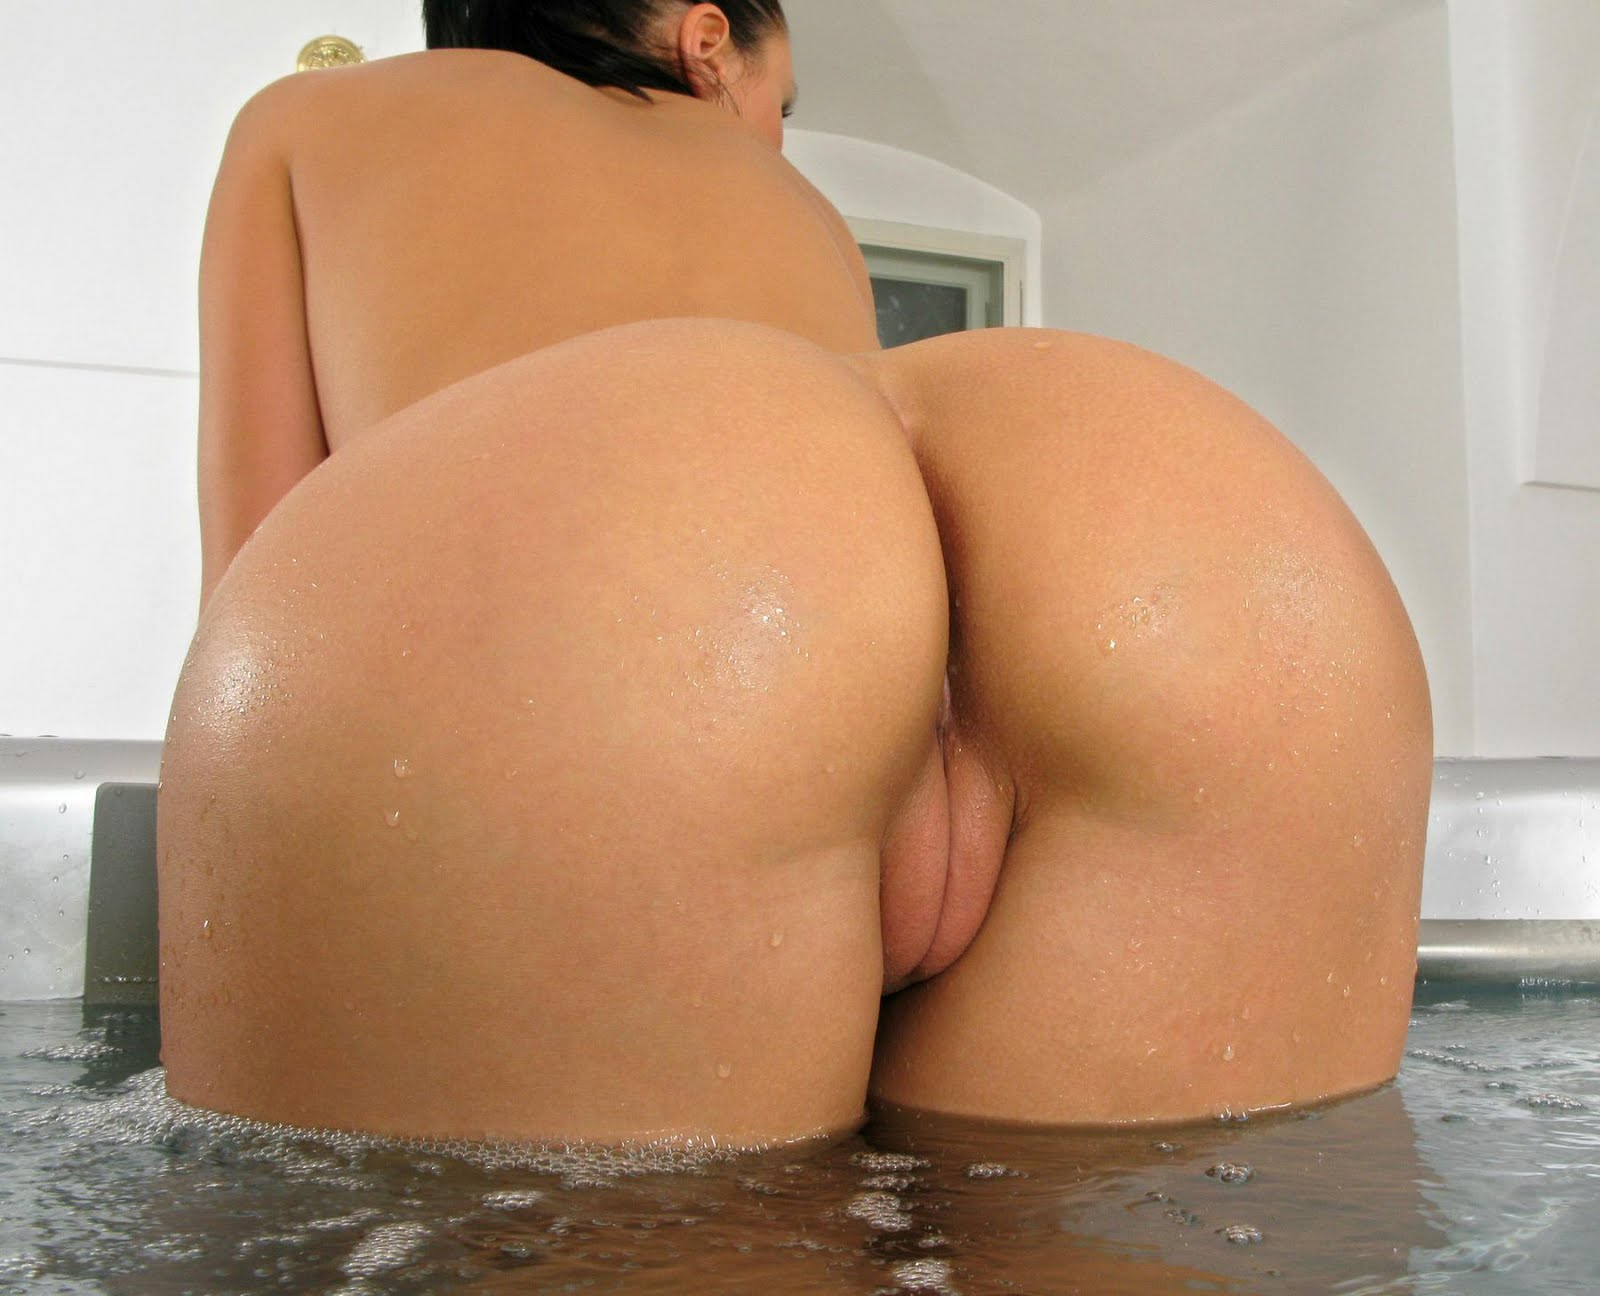 Big Wet Ass Porn 79